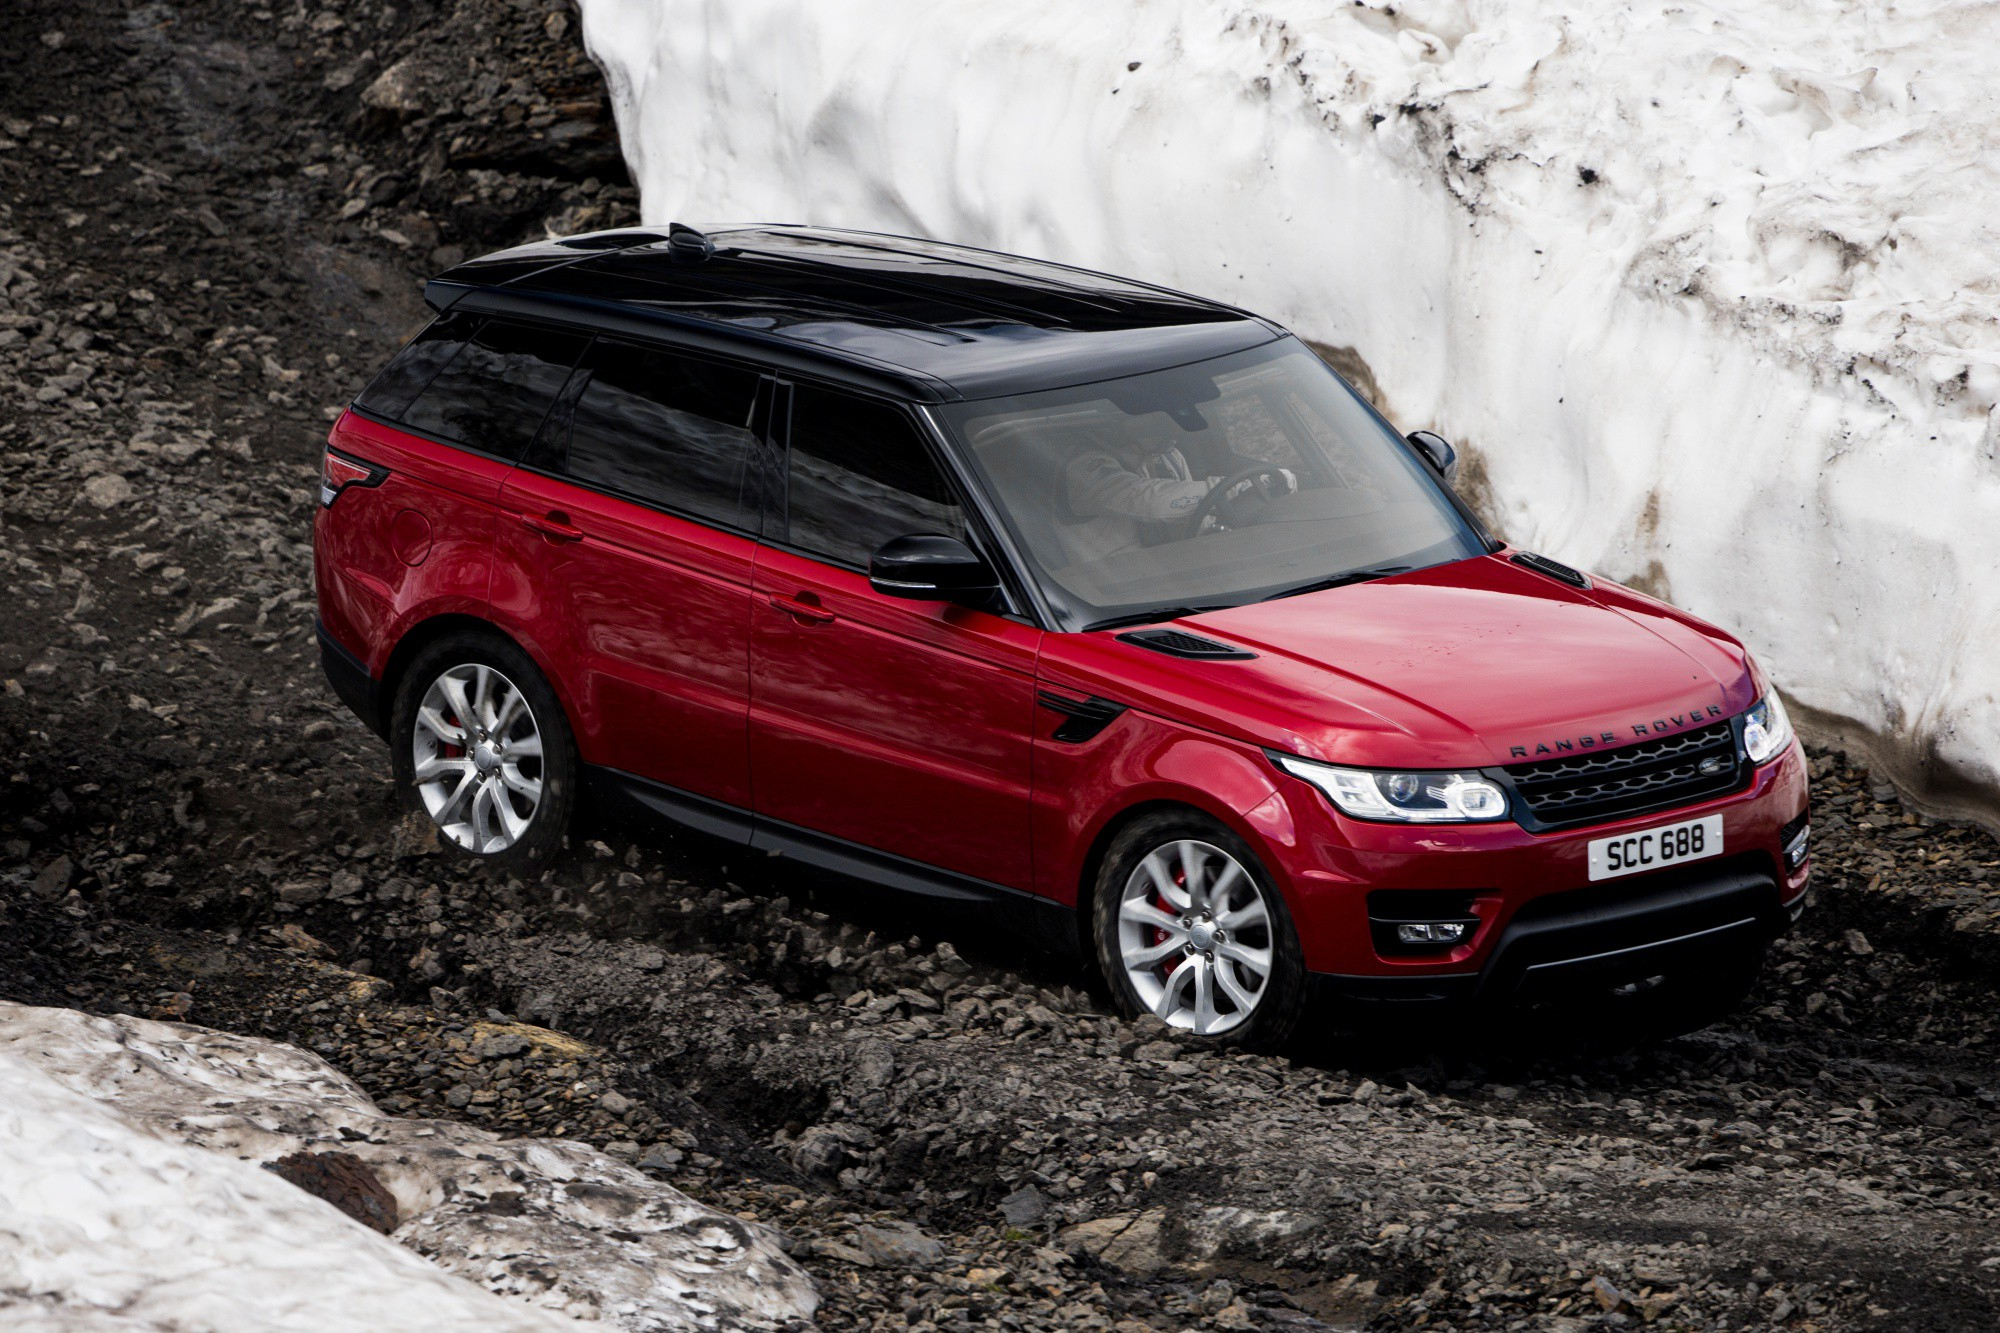 Ex Stig Drives Range Rover Sport on Downhill Ski Course Just for